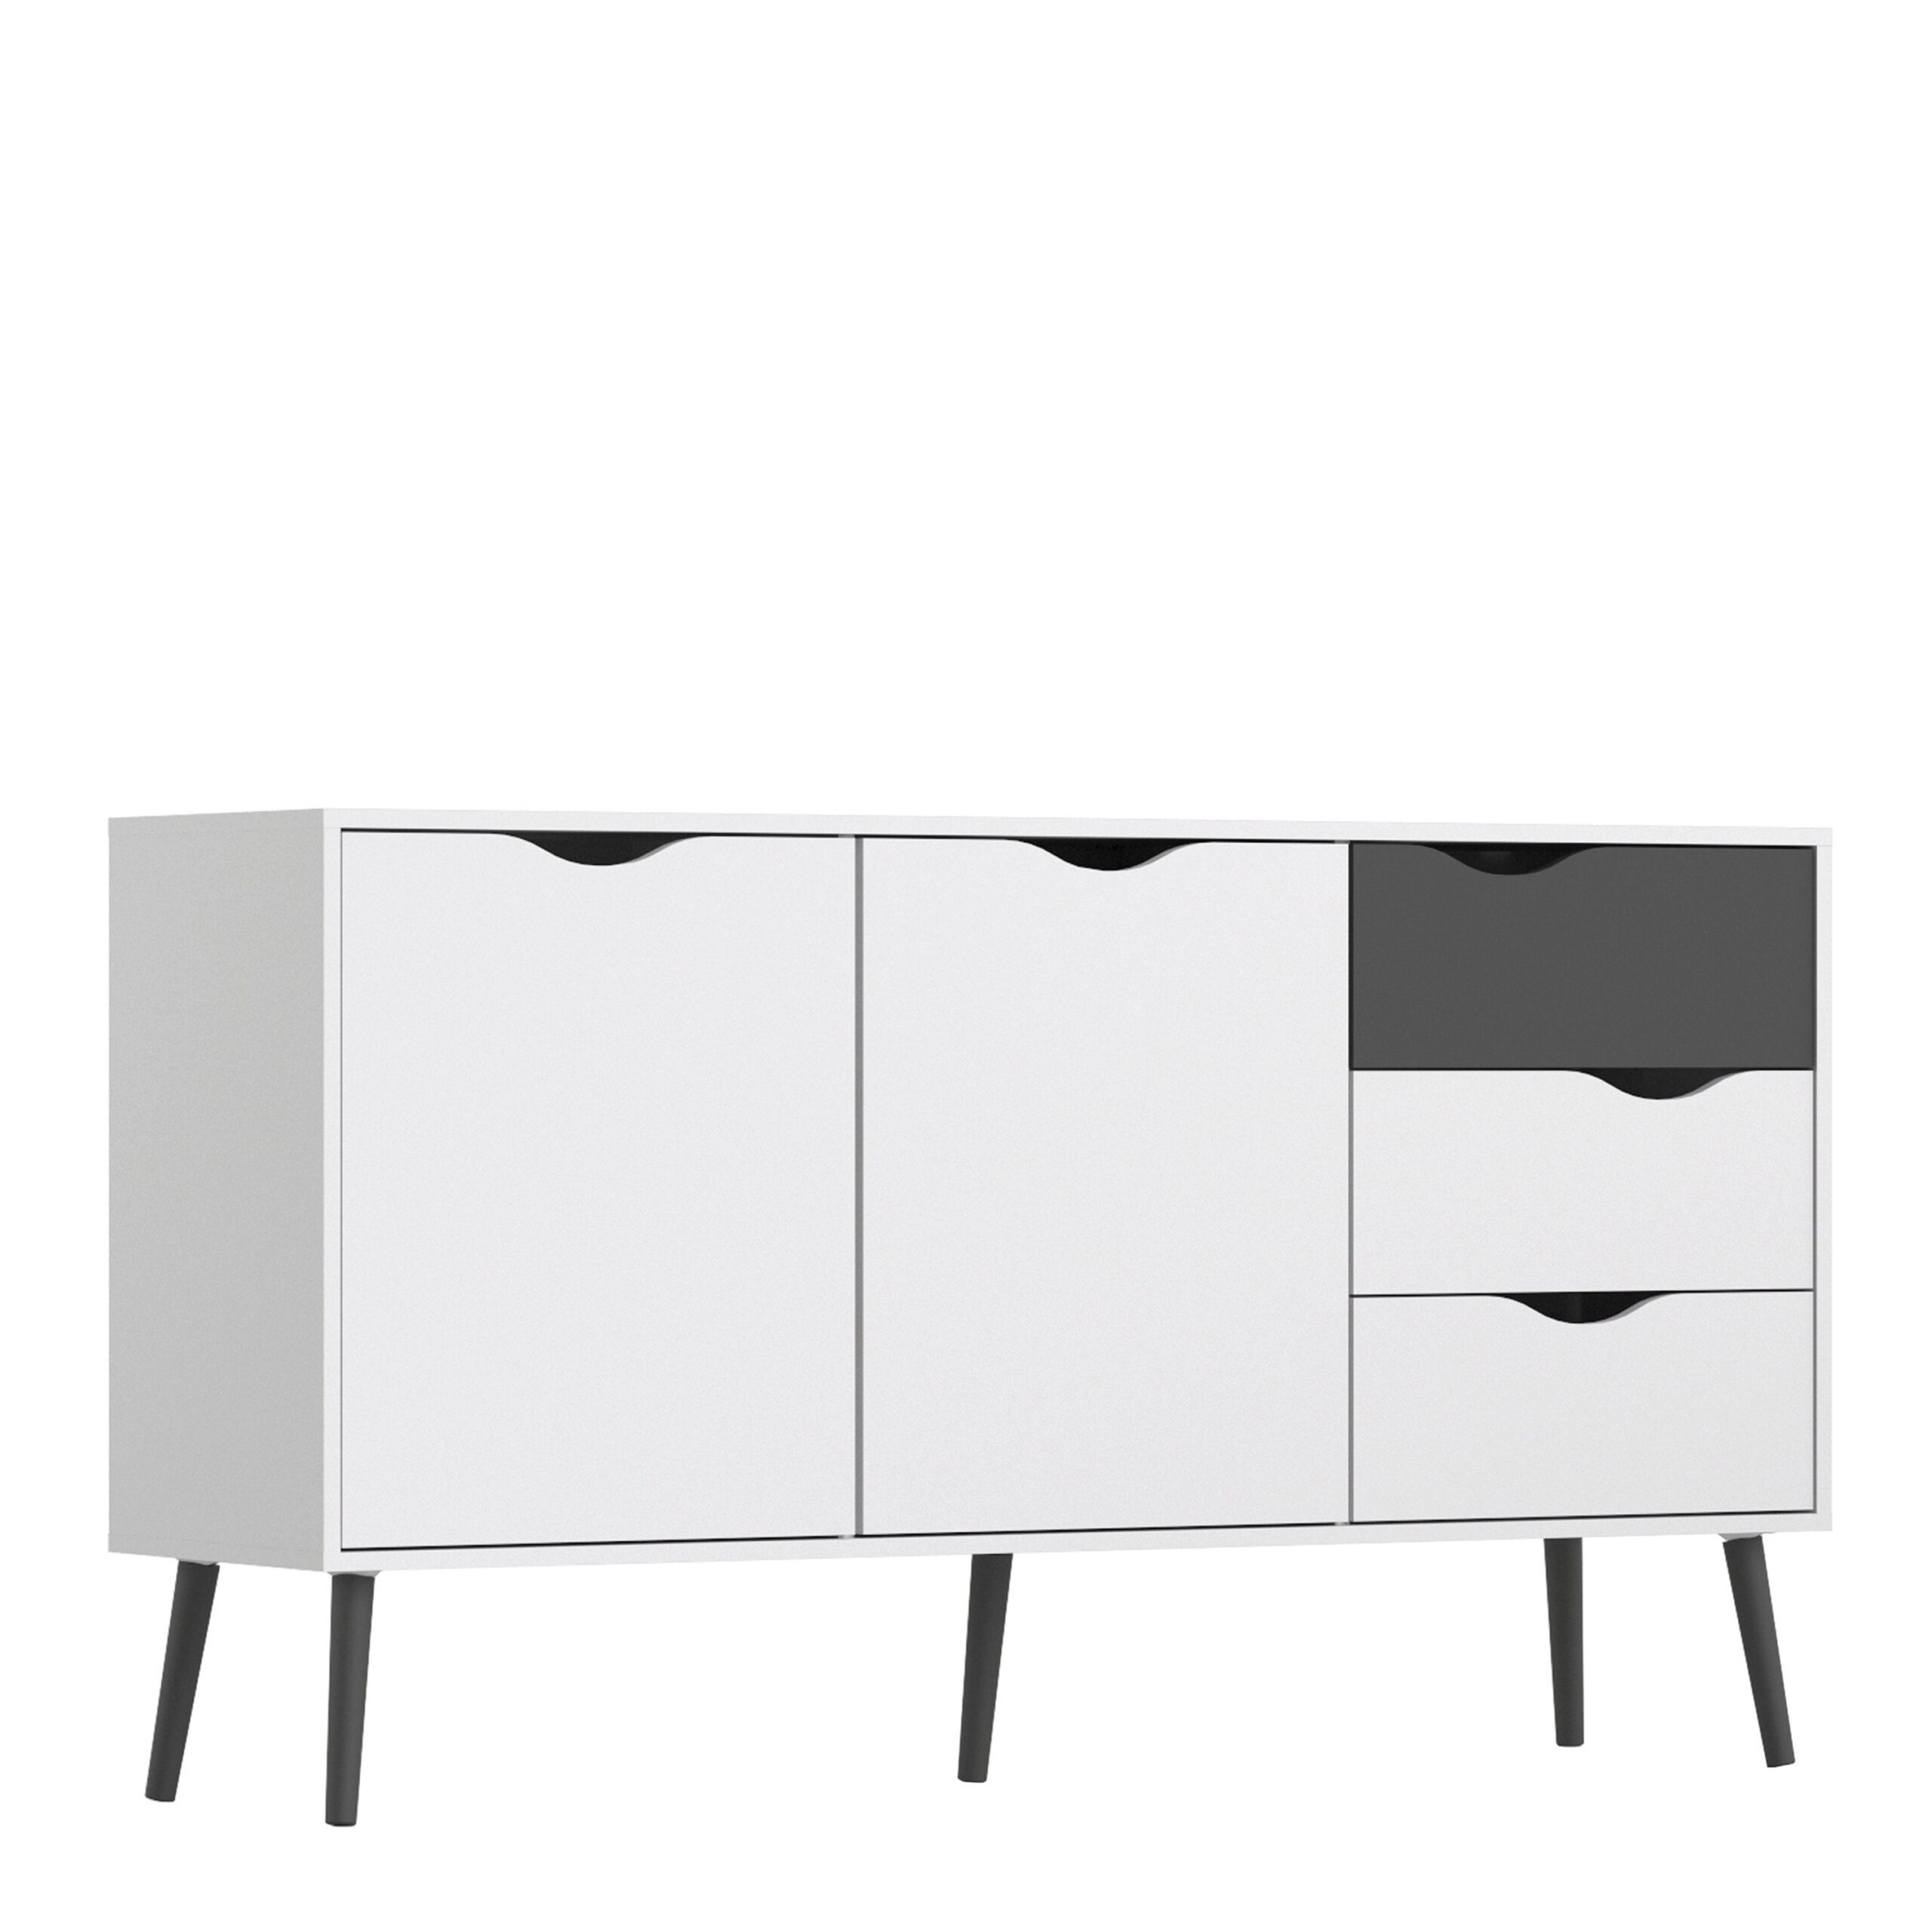 Solo Sideboard - Large - 3 Drawers 2 Doors in White and Black Matt